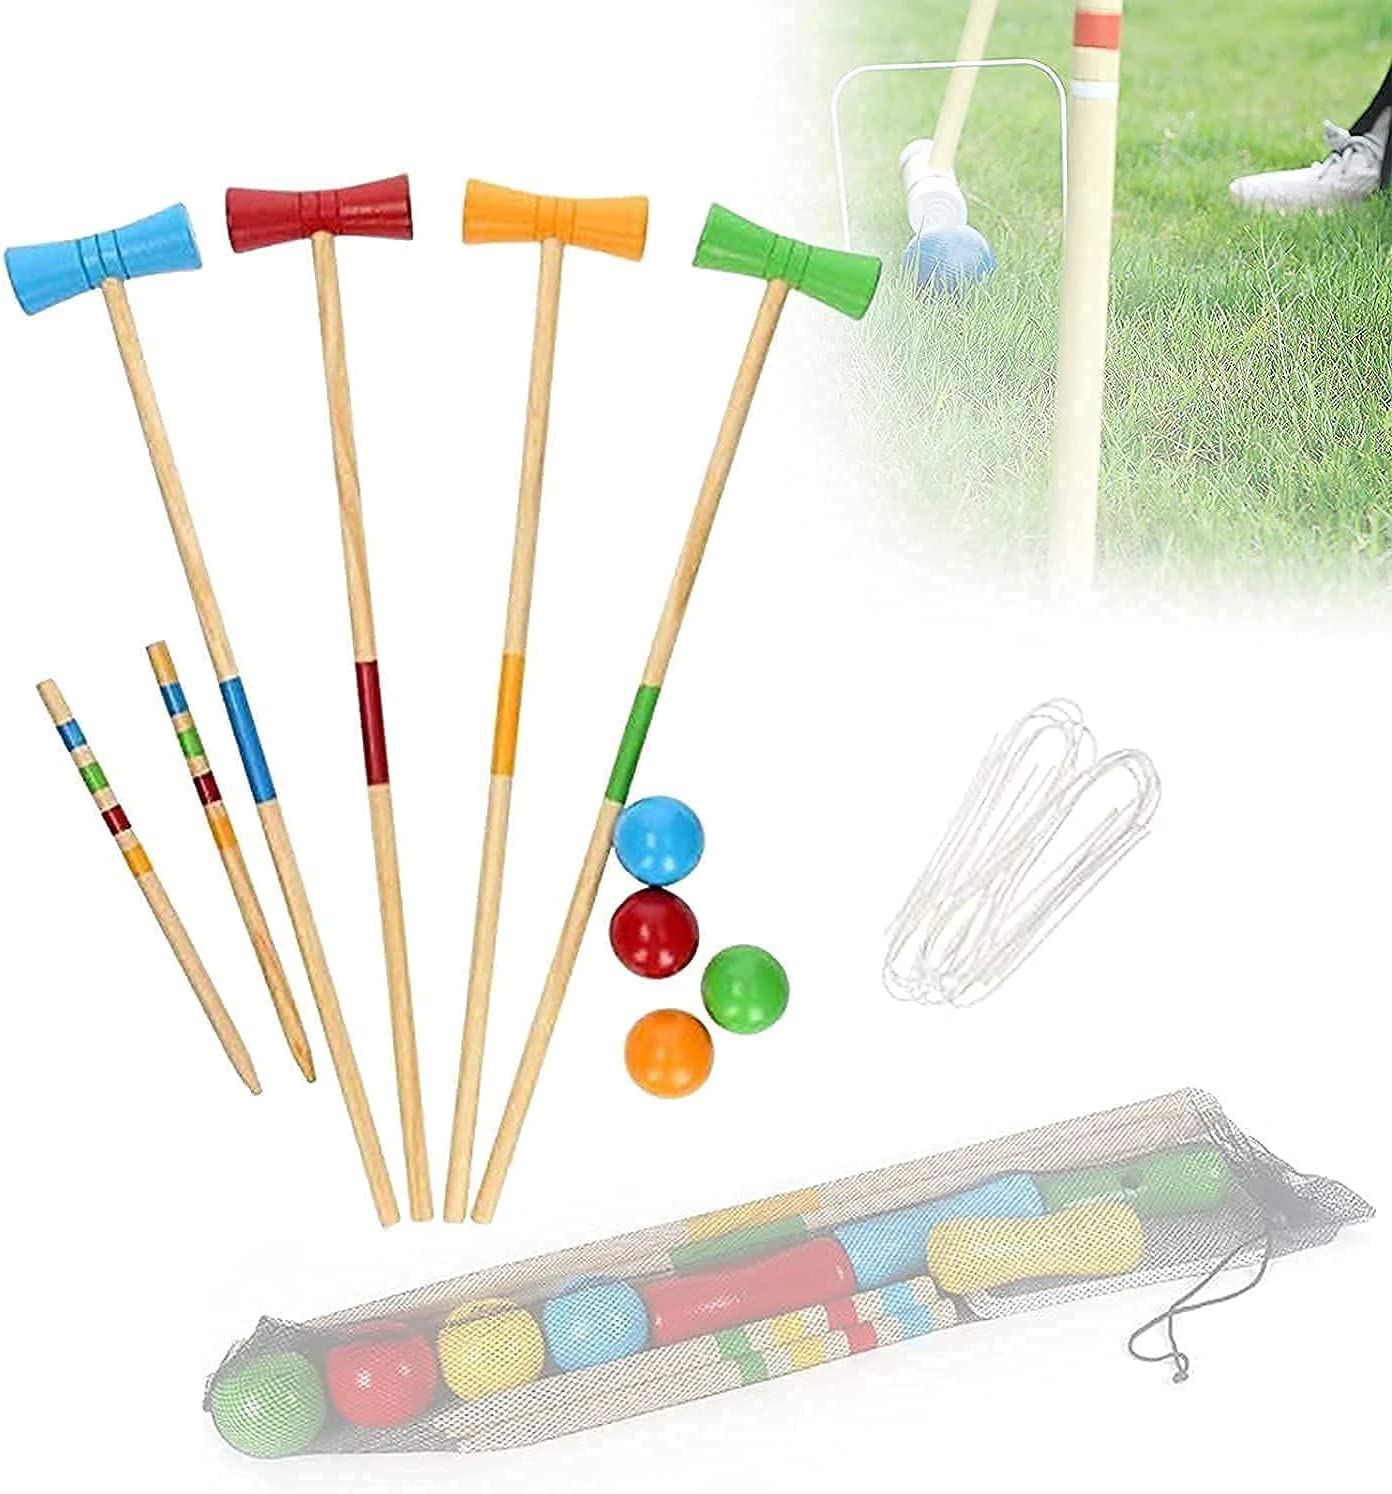 SZDYQ Wooden Garden Our shop most popular Chicago Mall Croquet Set Net for Kids Sets with